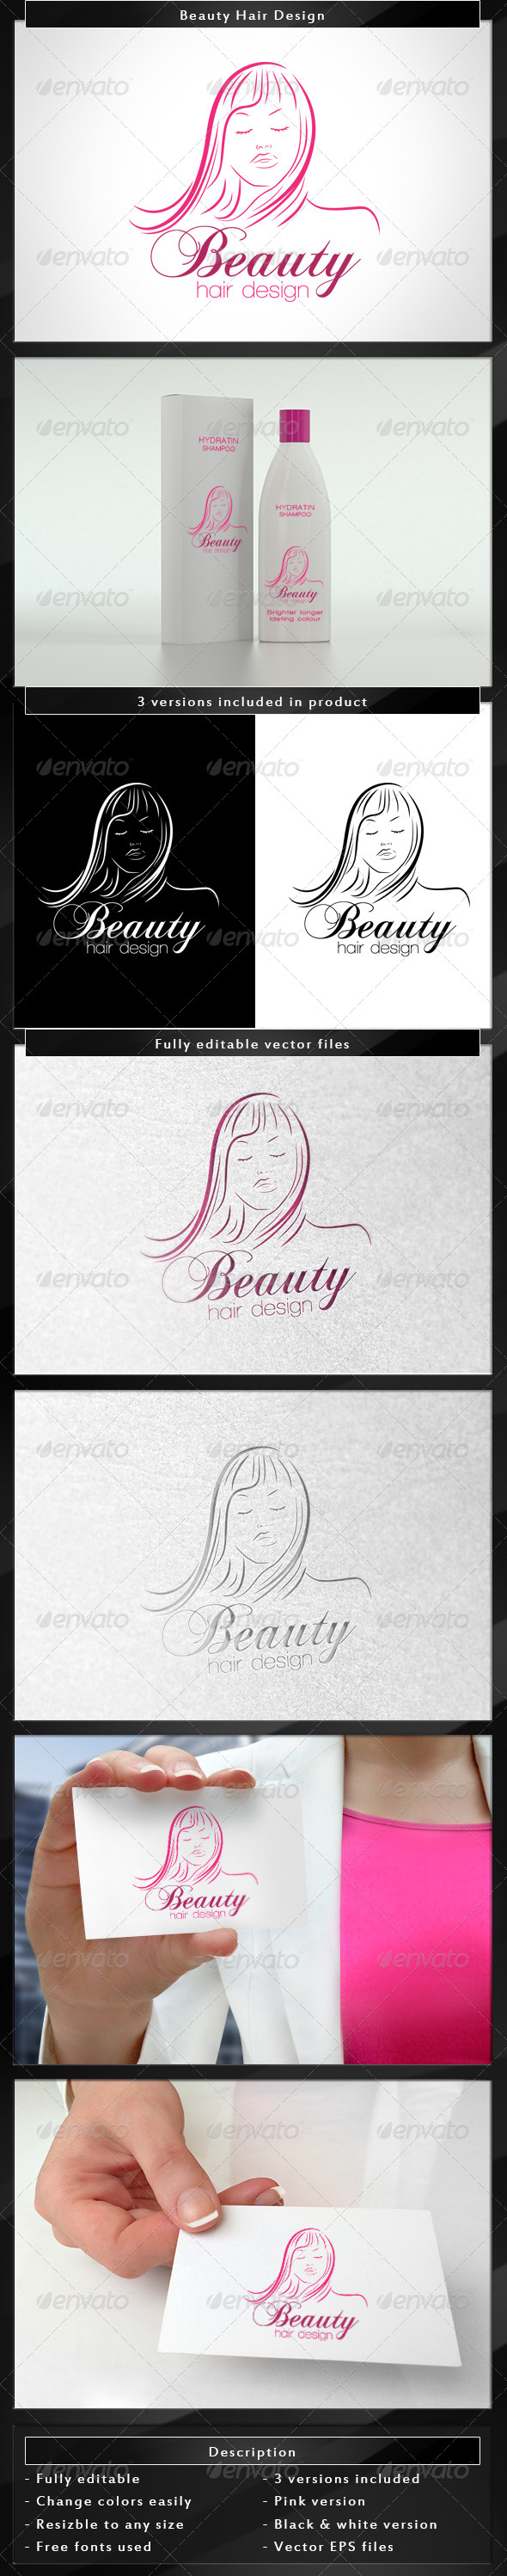 Beauty Hair Design - Humans Logo Templates